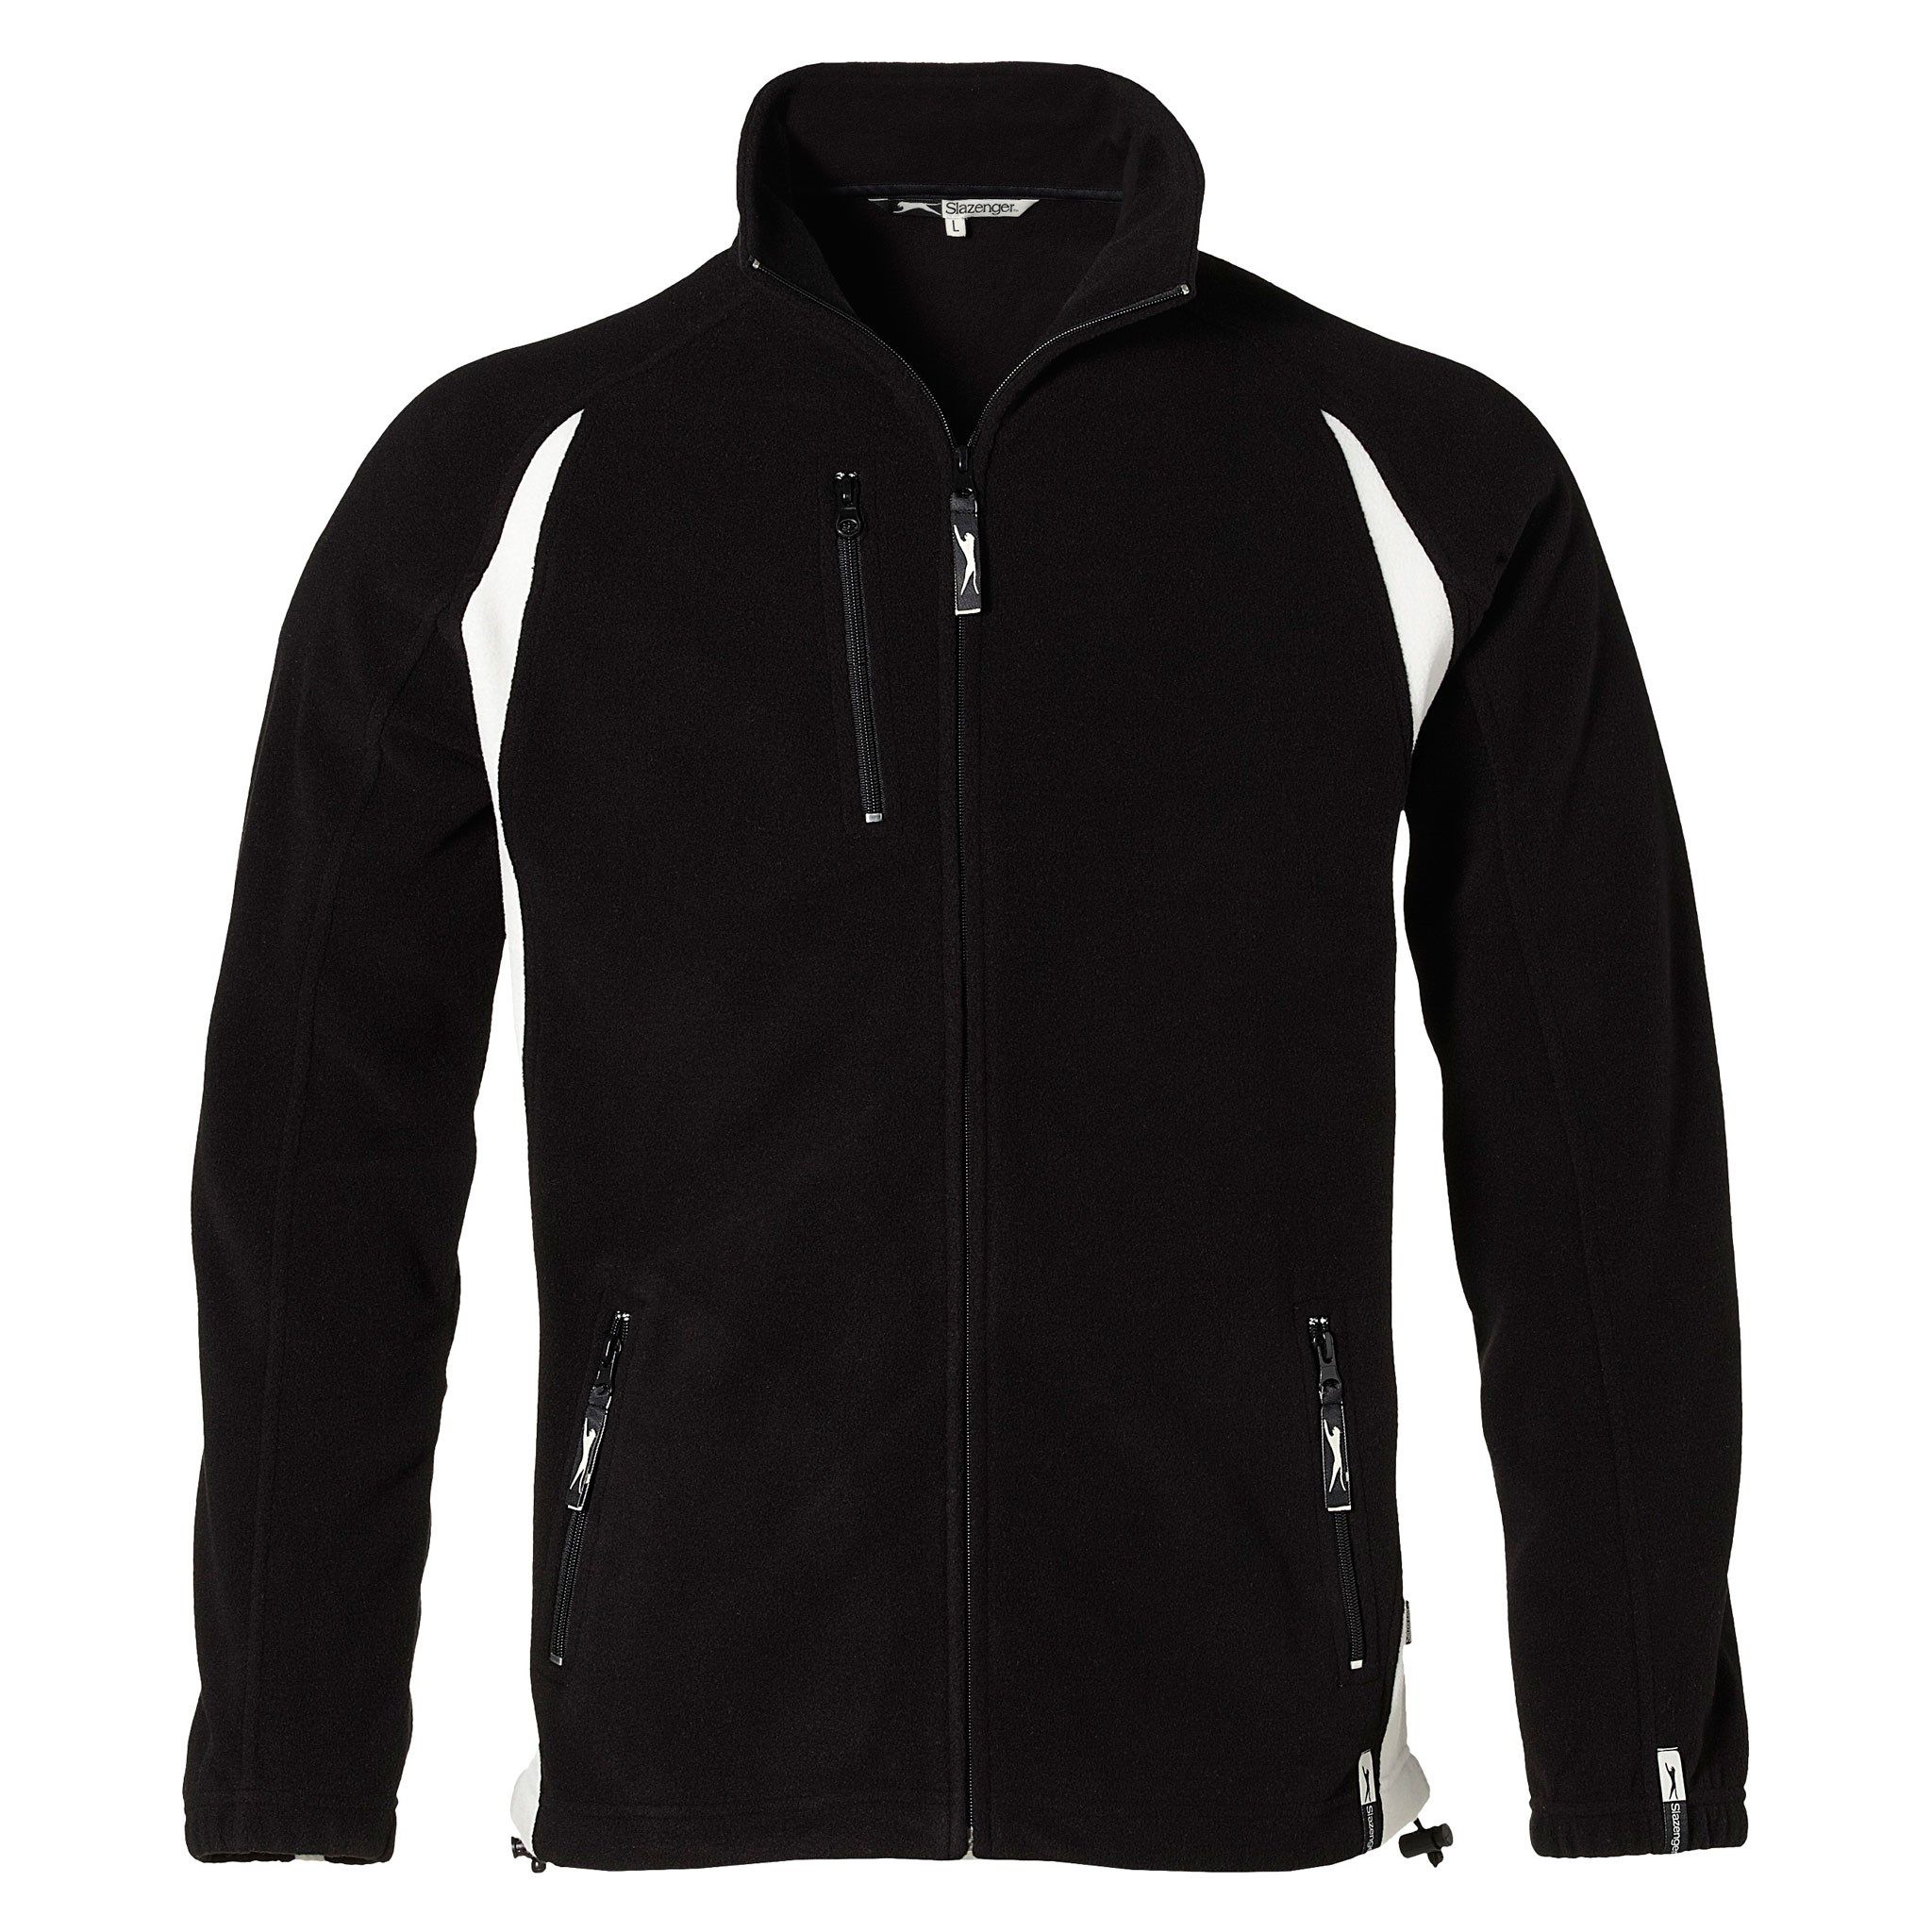 Fleece jackets are amazing branded corporate items for winter ...